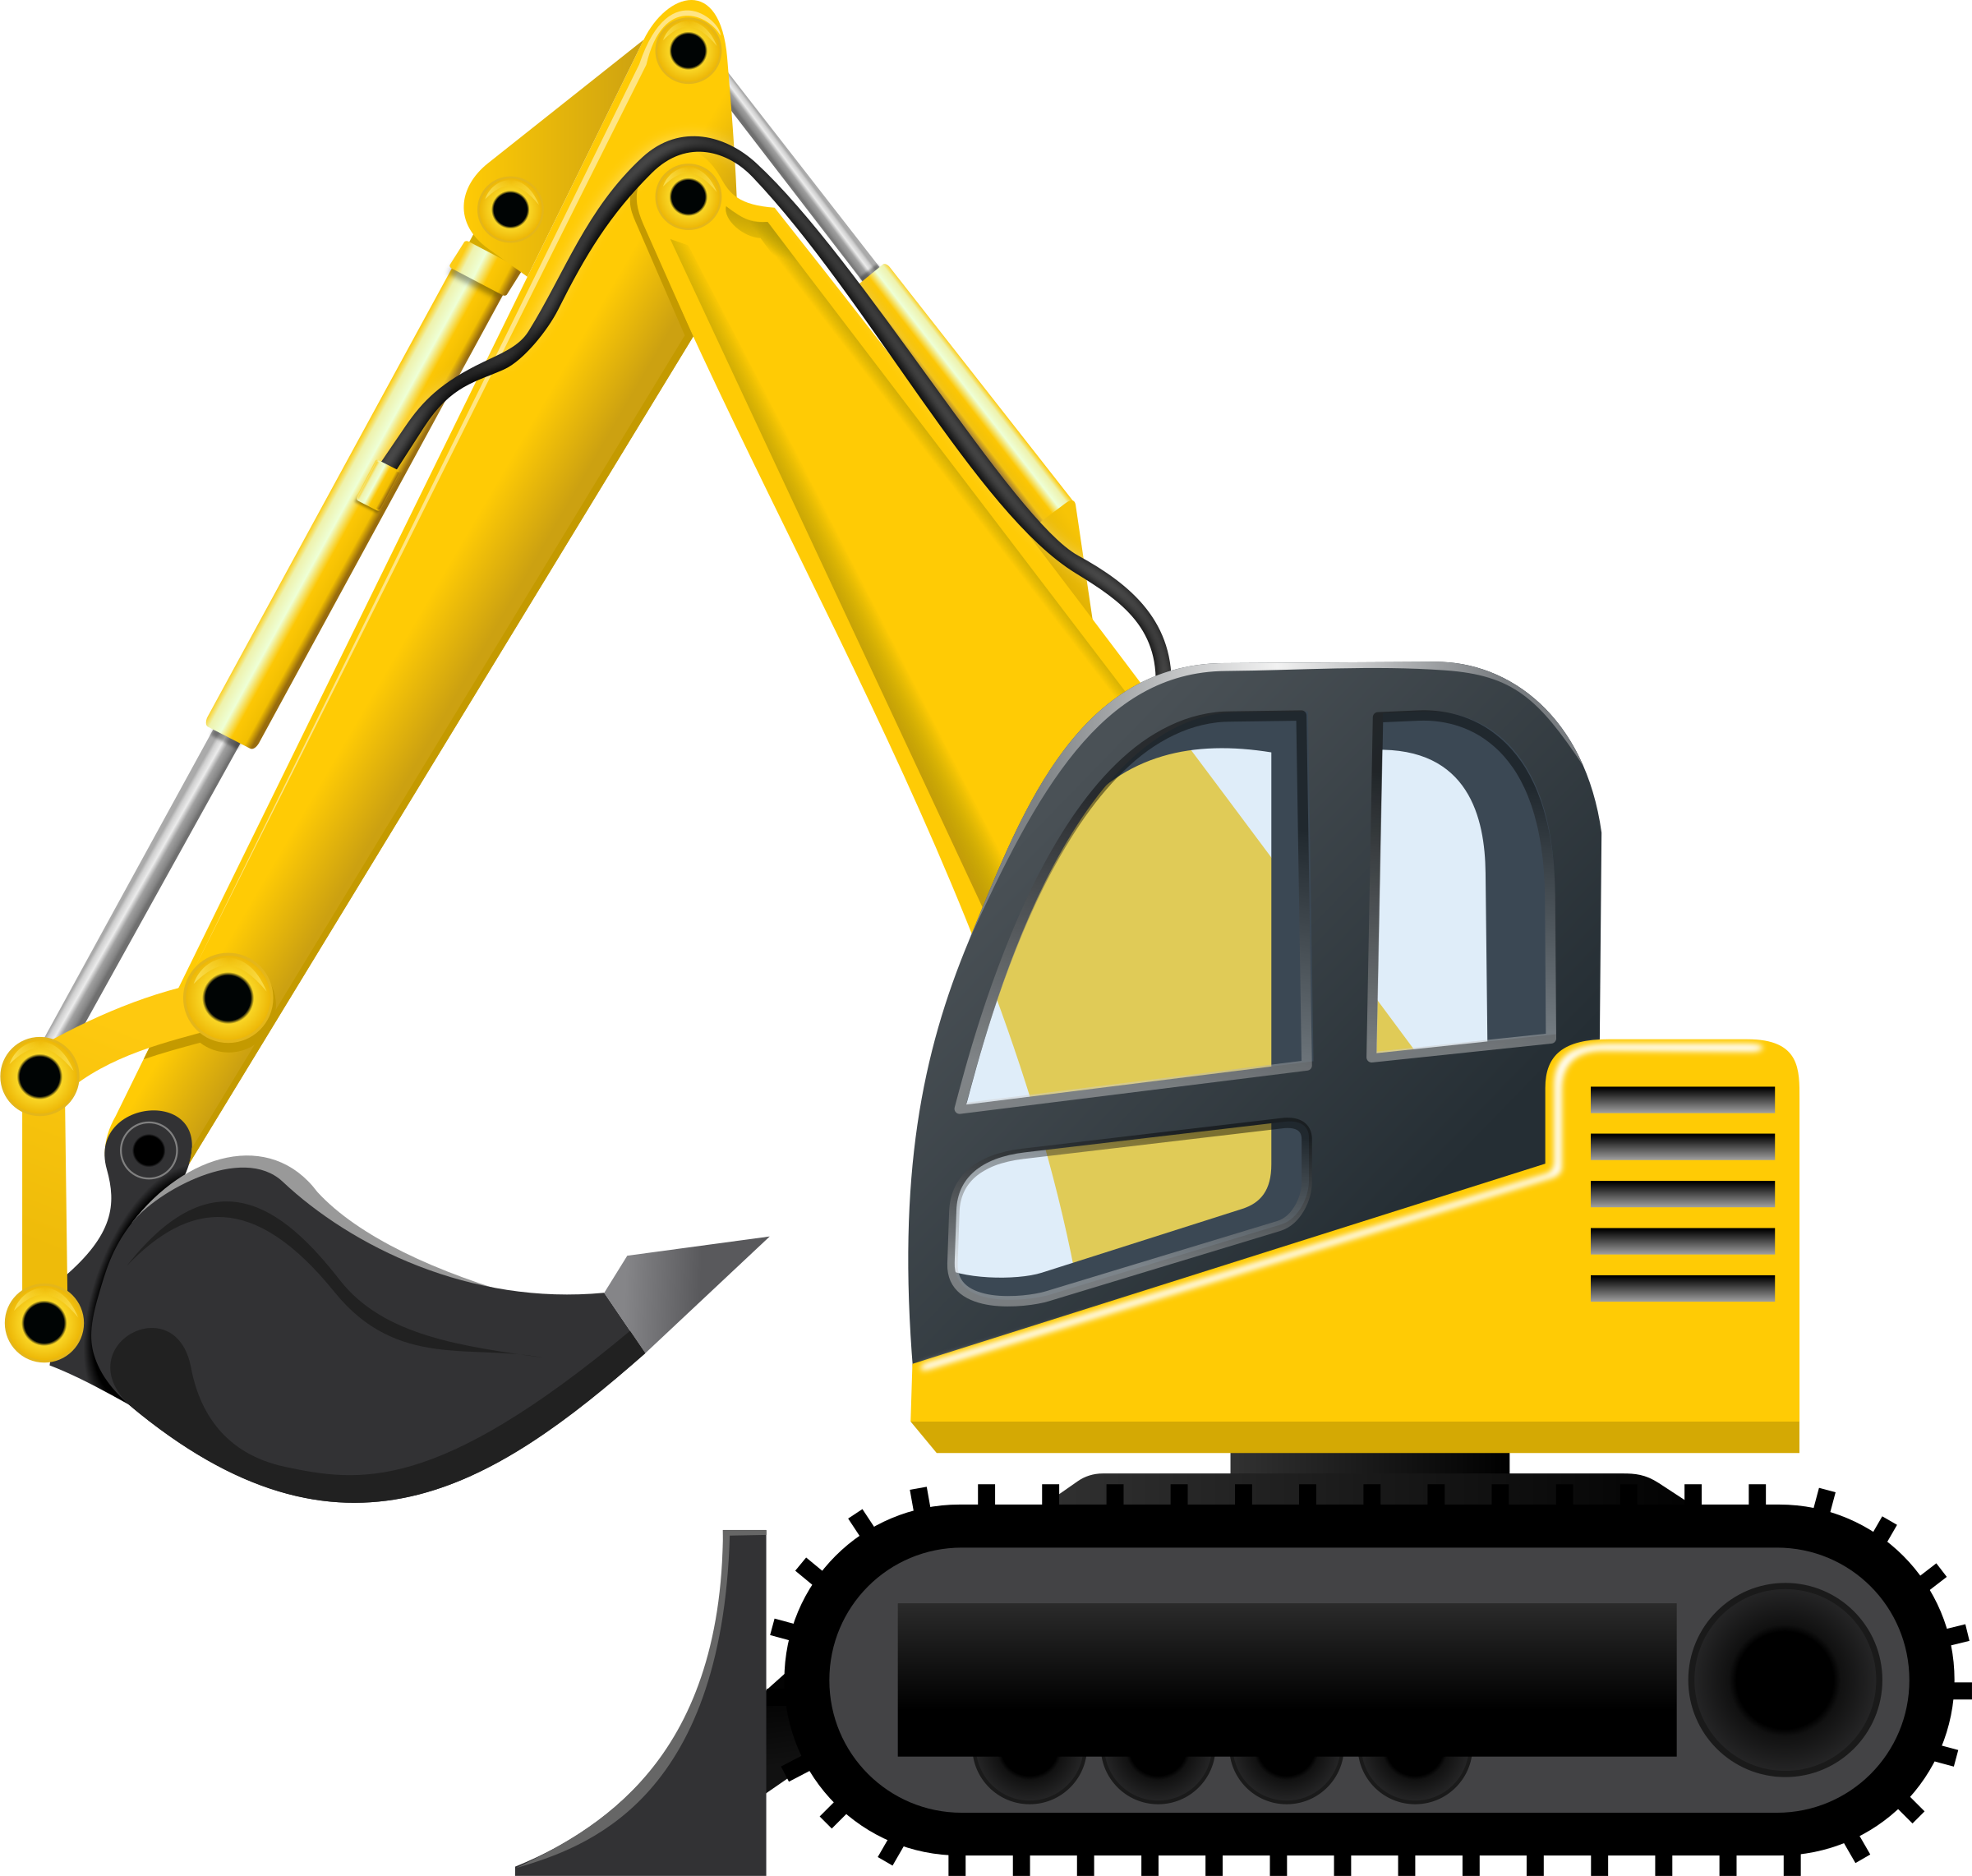 Cat excavator clipart banner free 28+ Collection of Excavator Clipart | High quality, free cliparts ... banner free